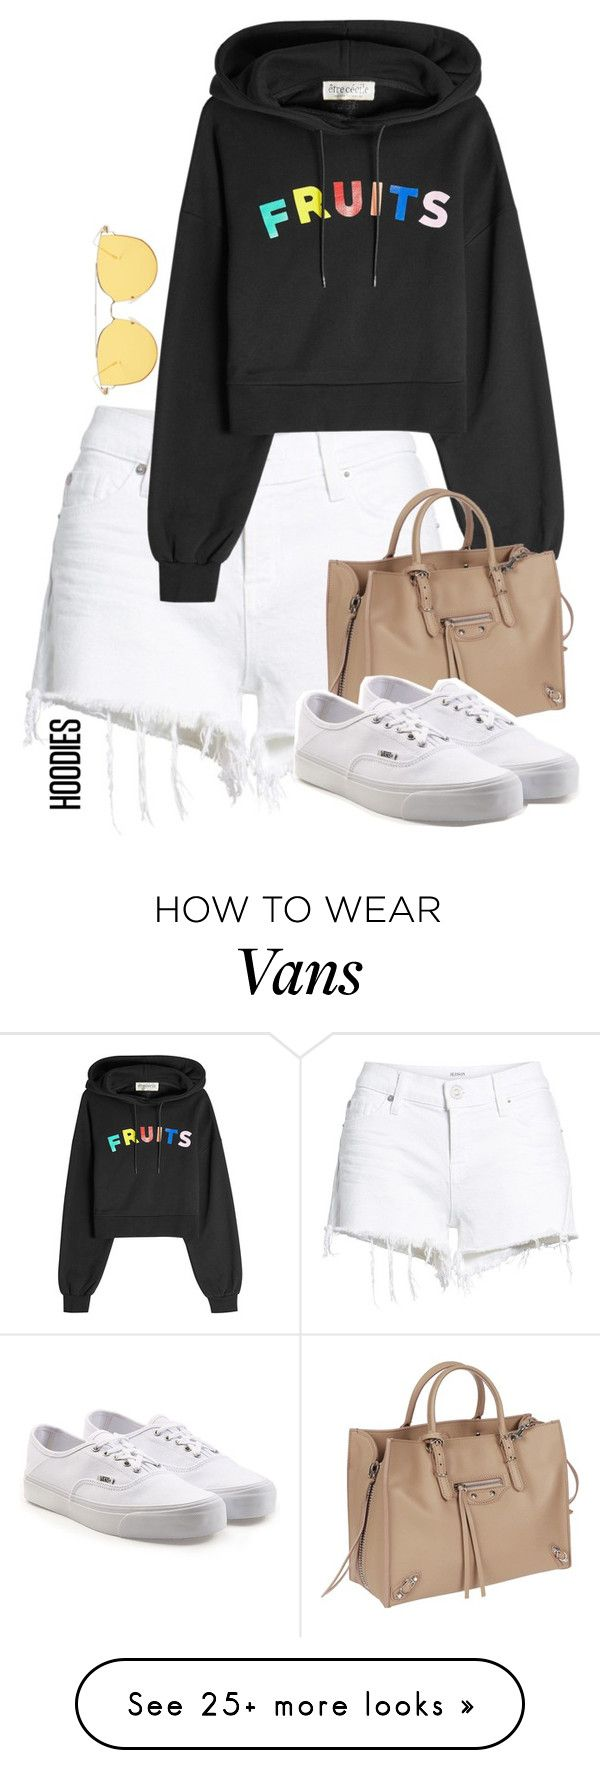 """""""Ball"""" by hipster-bohemian on Polyvore featuring Hudson Jeans, Être Cécile, Balenciaga, Vans and Hoodies"""